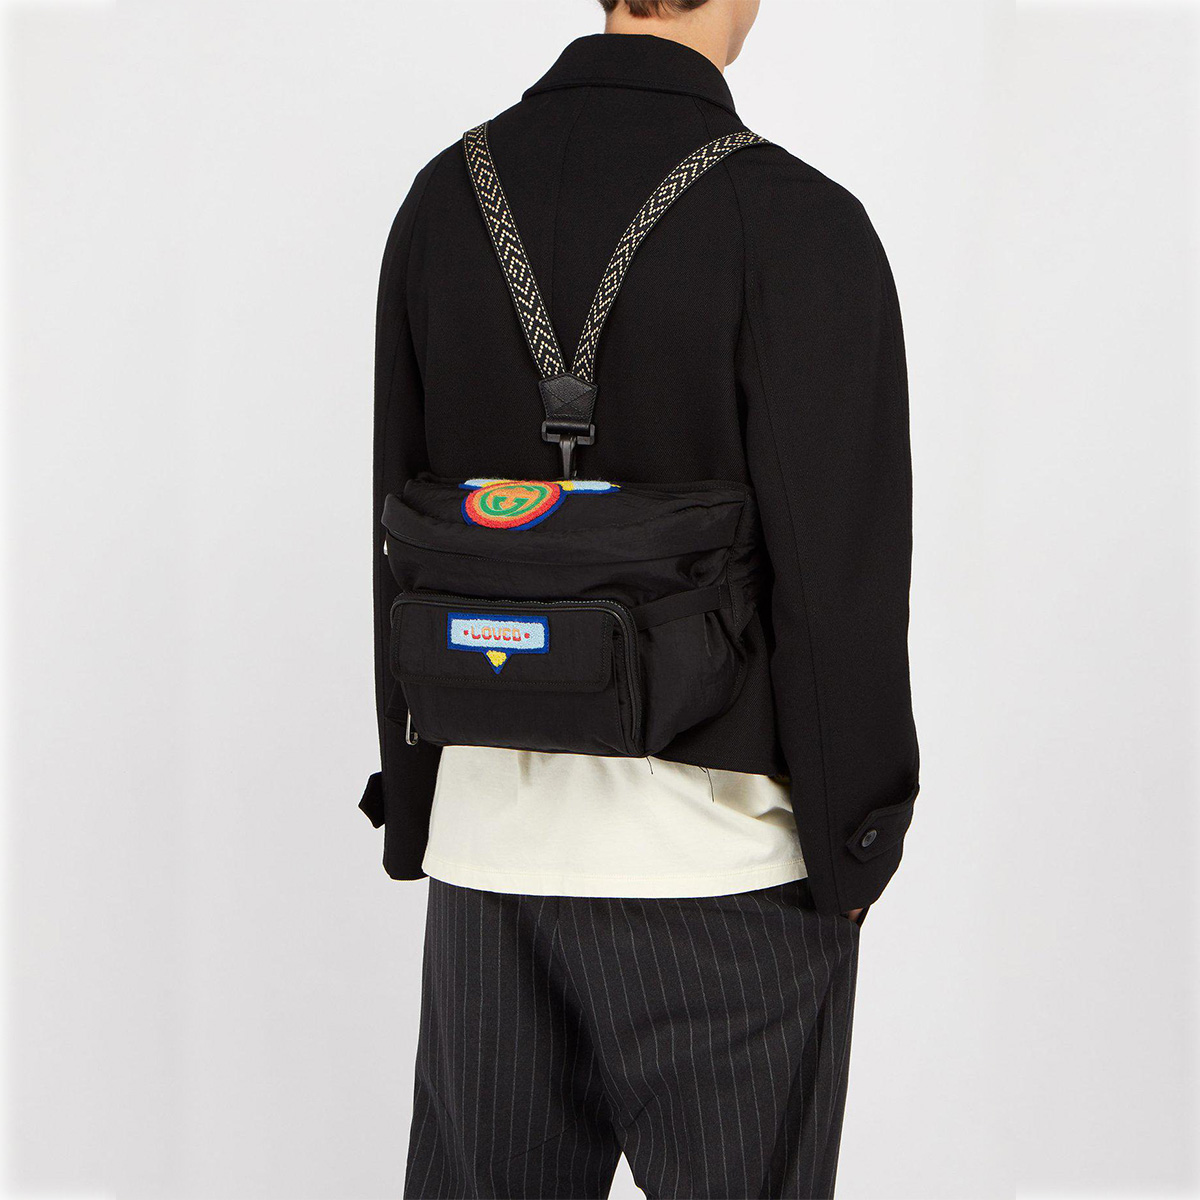 tui-deo-gucci-with-gucci-80s-patch